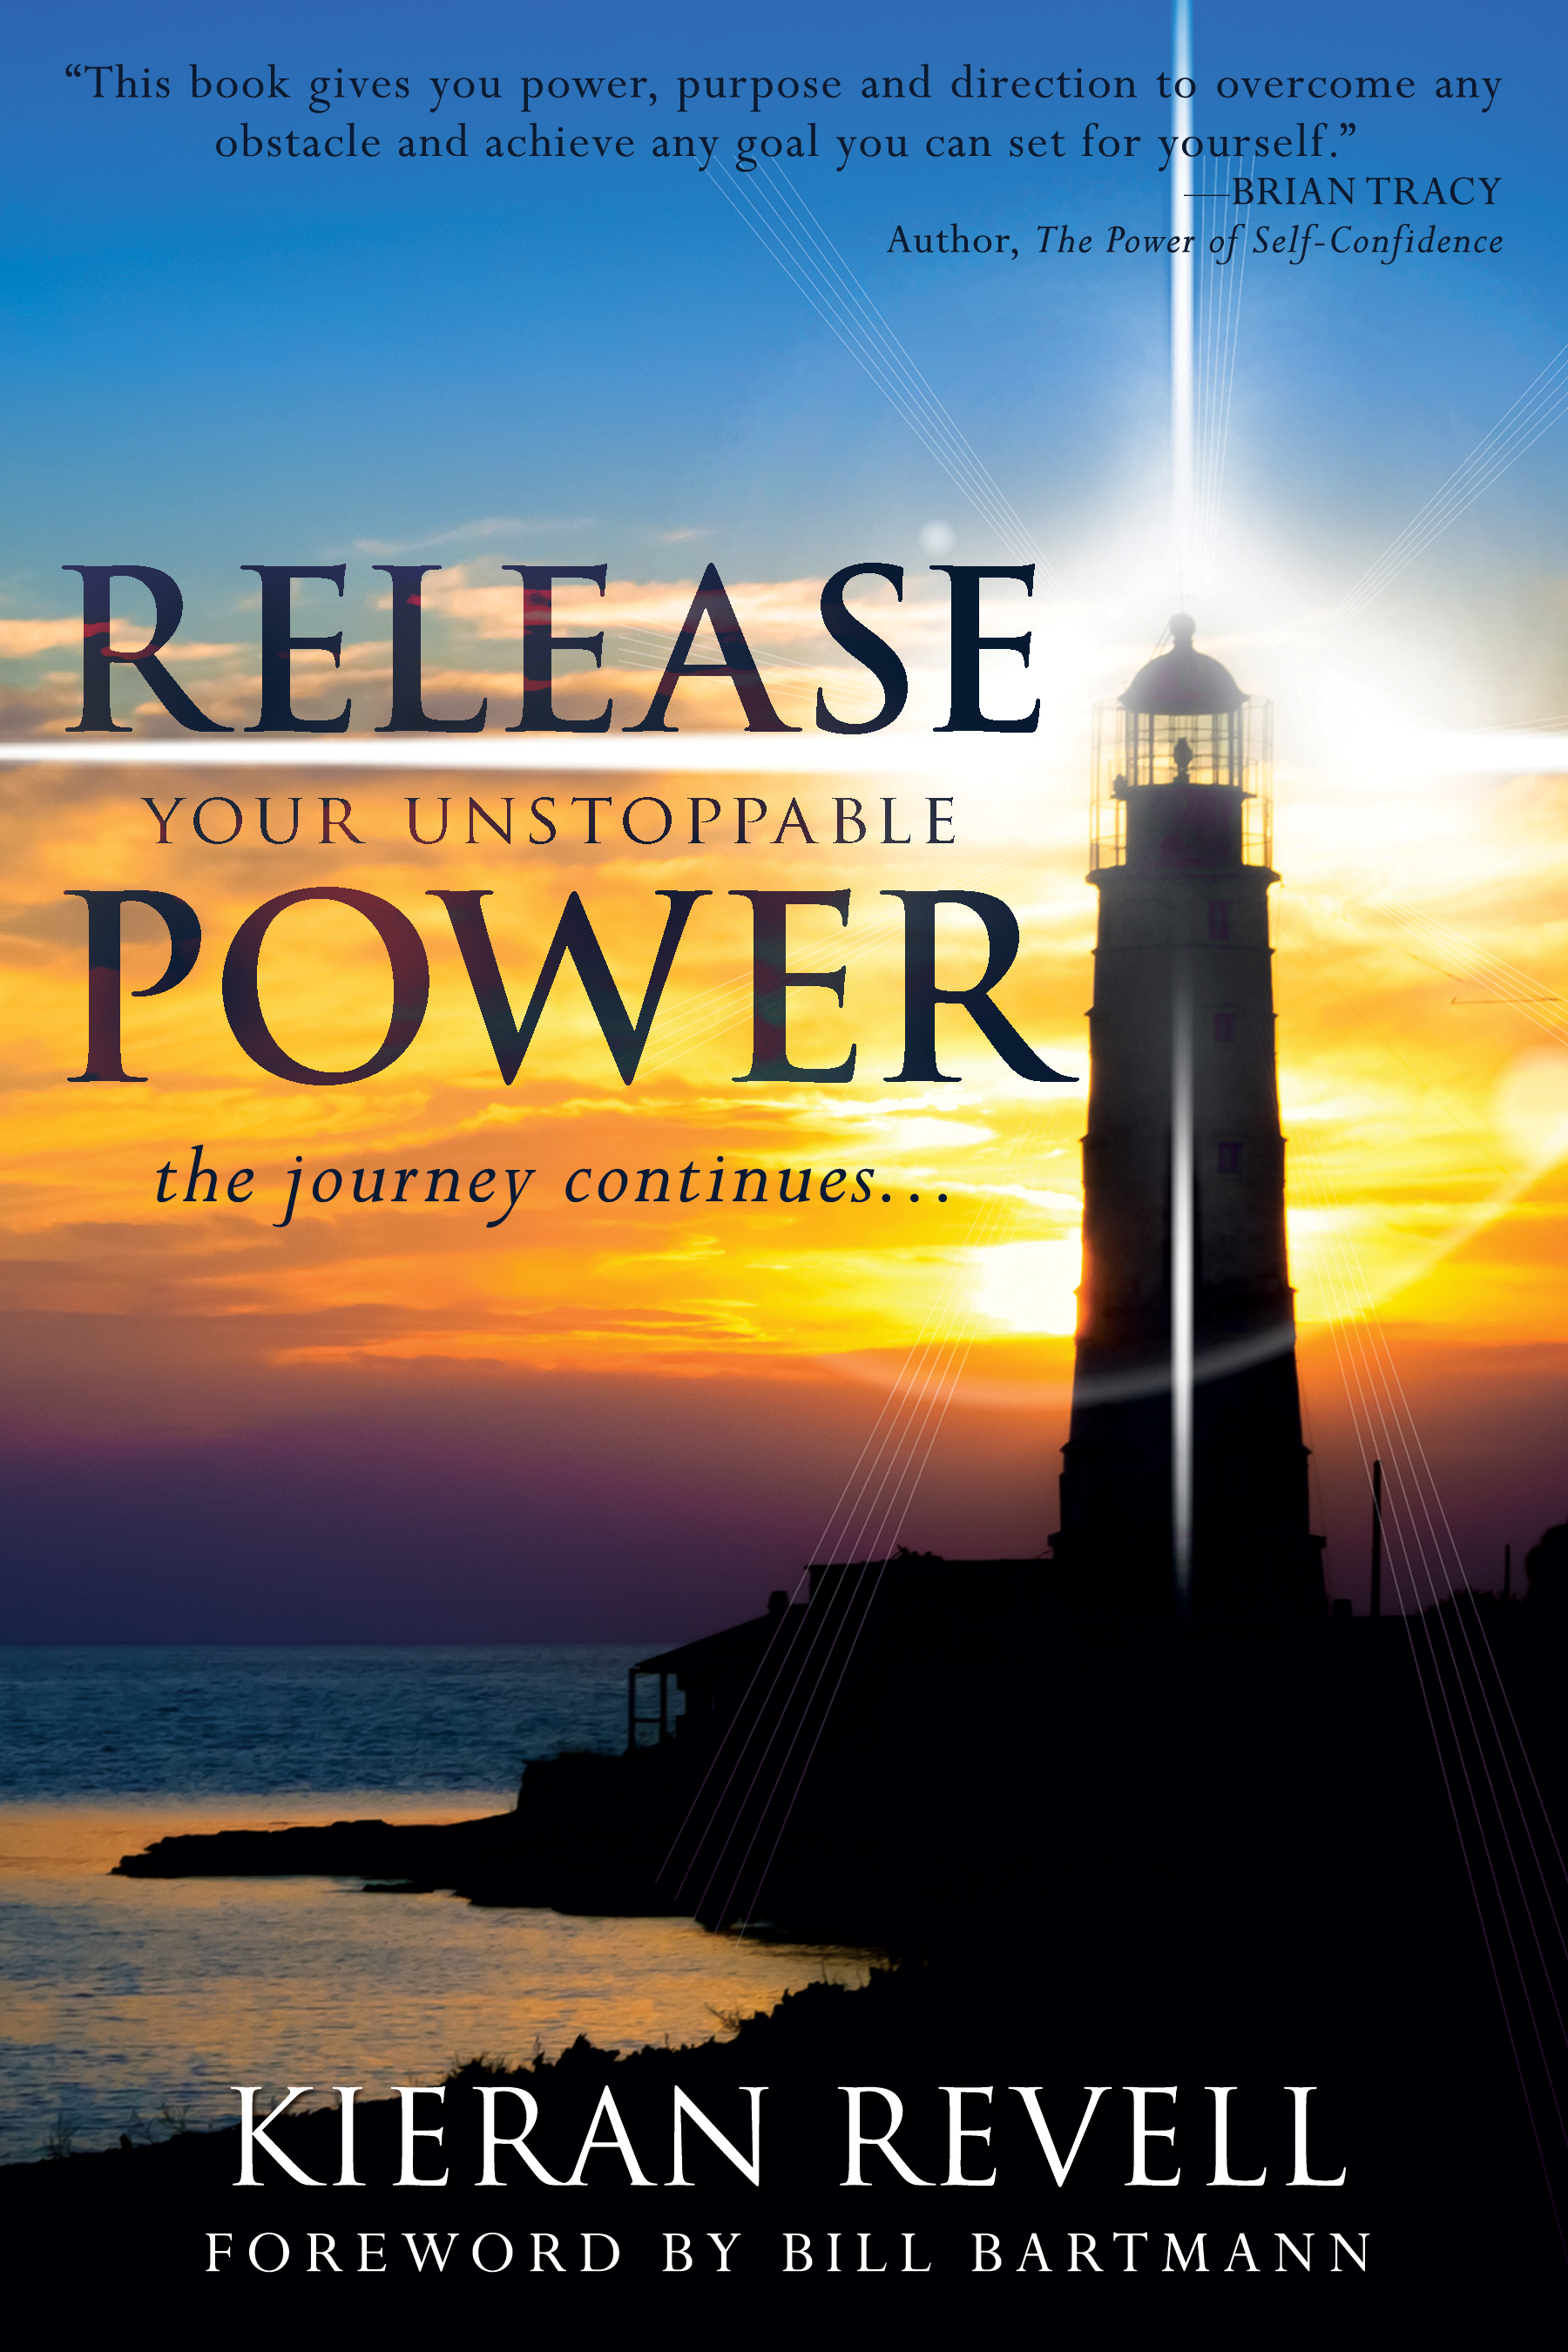 Release Your Unstoppable Power - By kieran revell